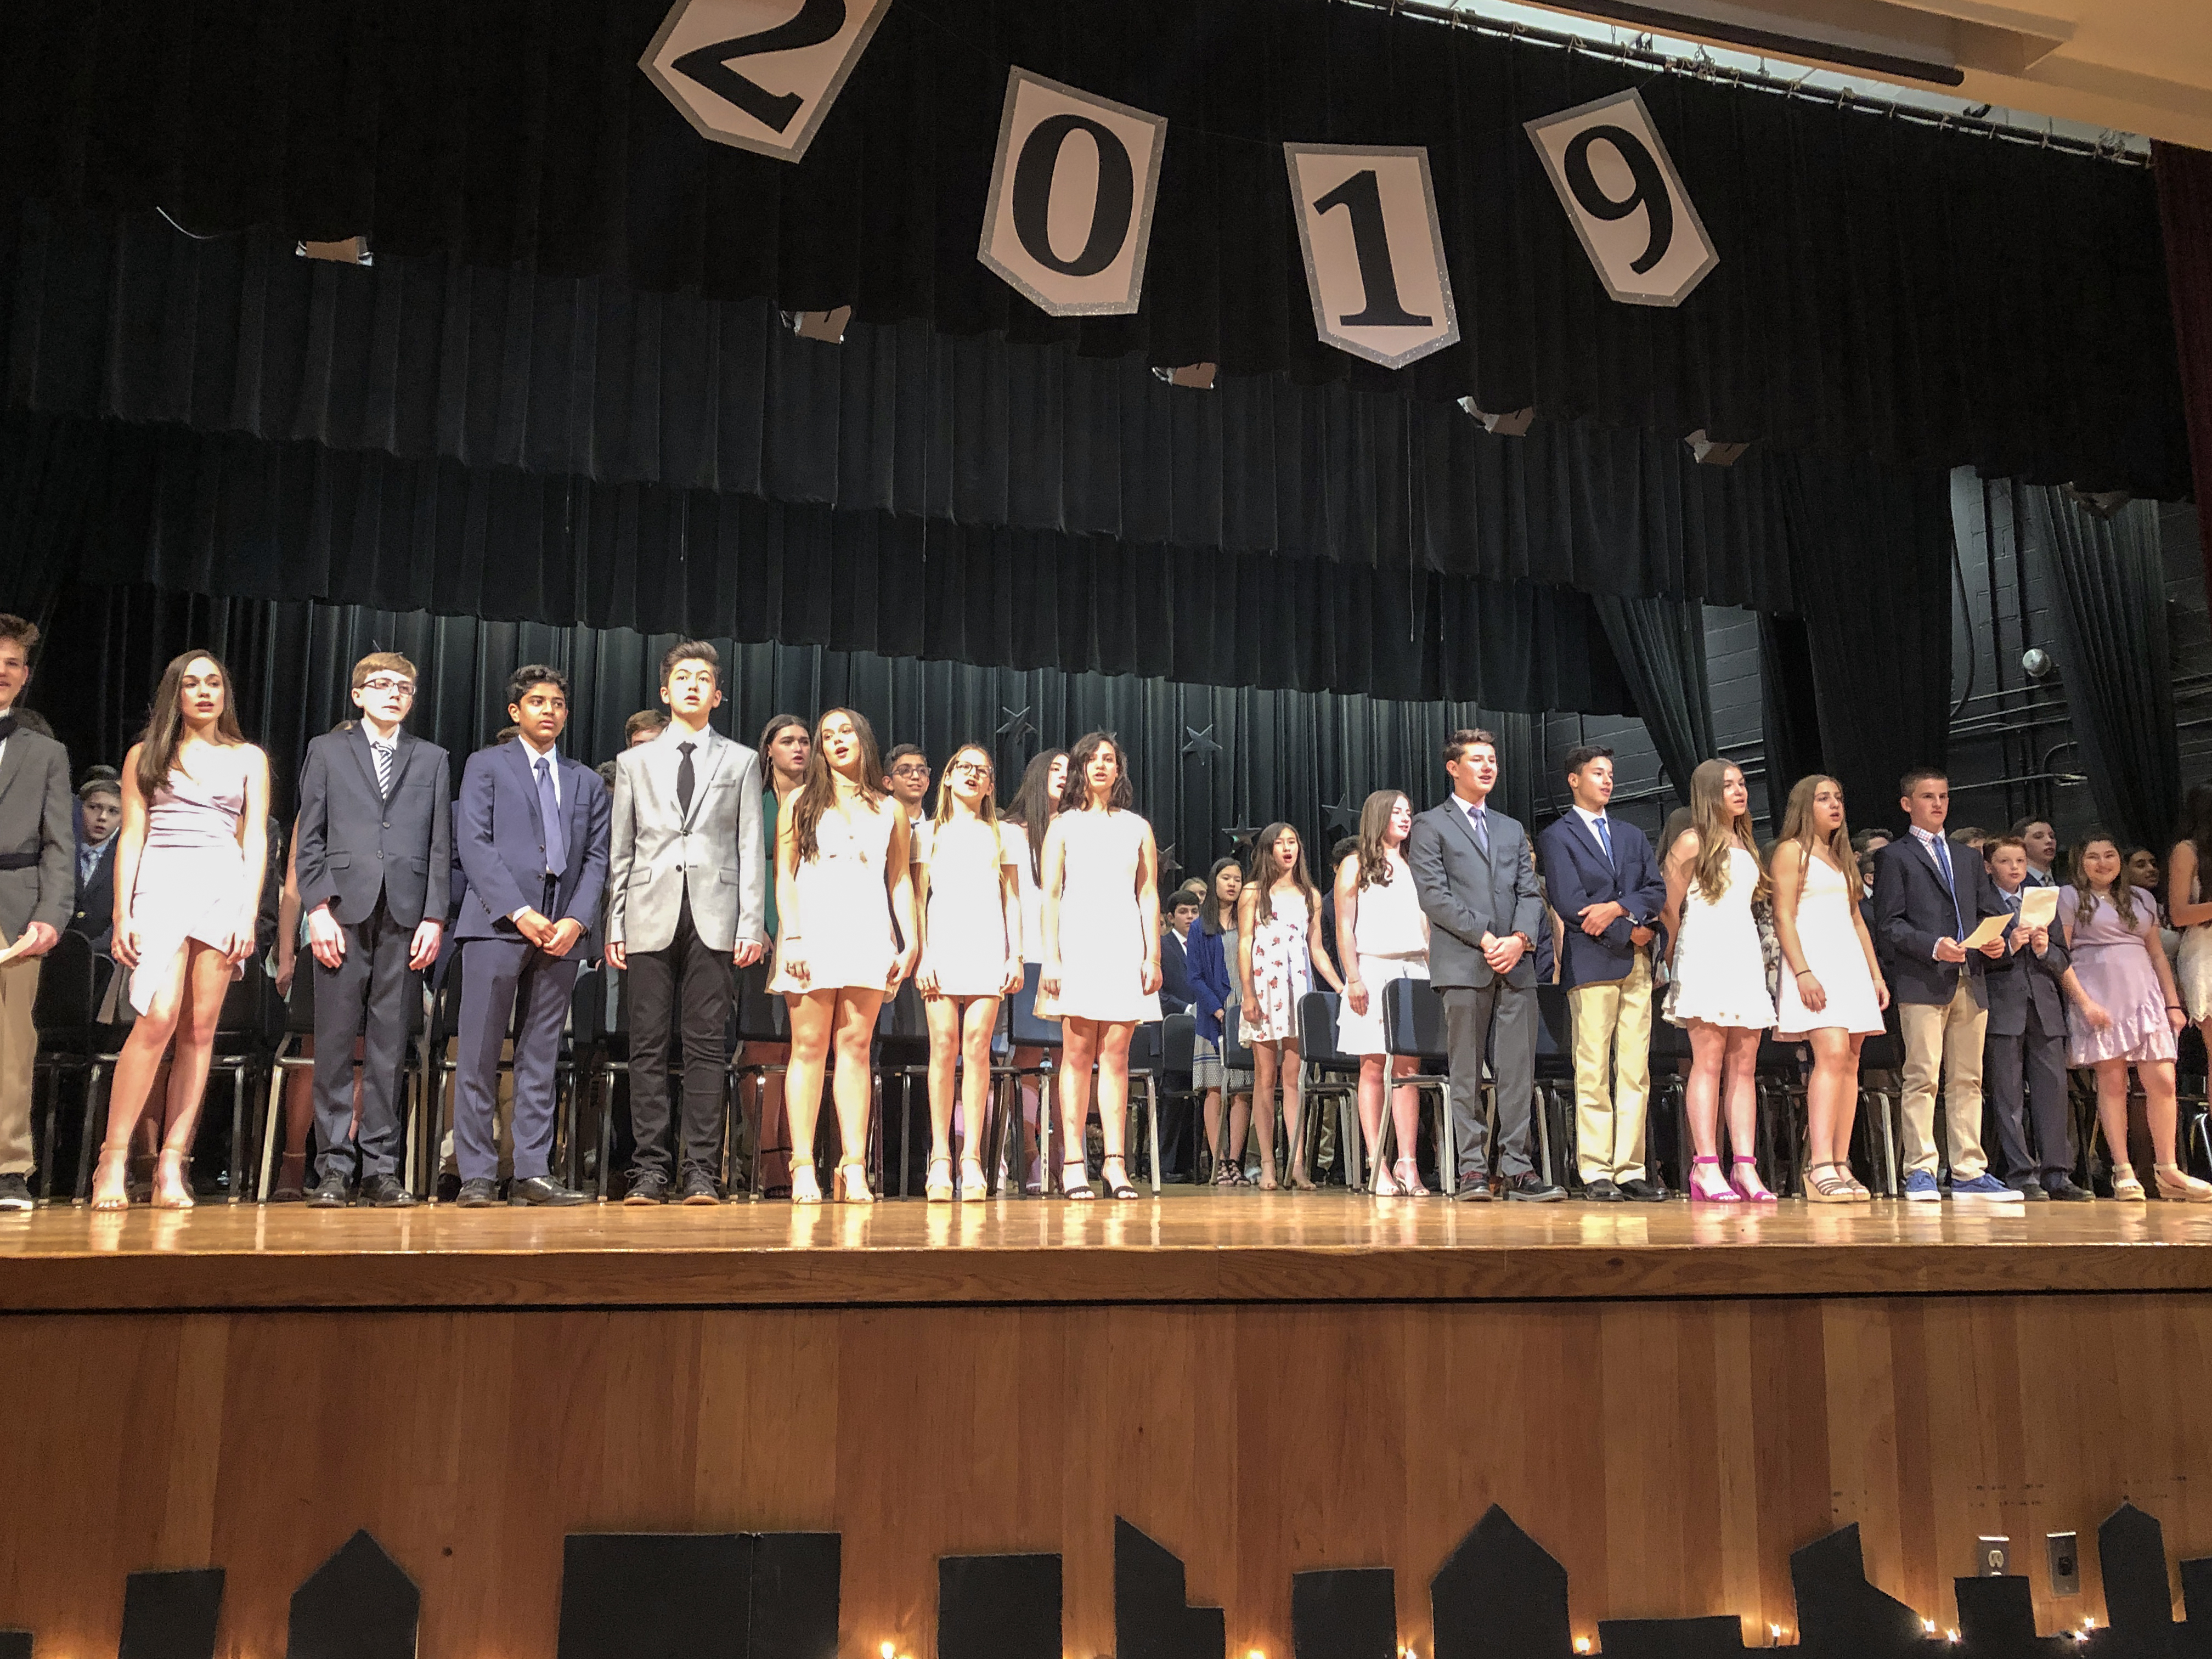 H. C. Crittenden eighth graders shine on stage during their Moving Up Ceremony.